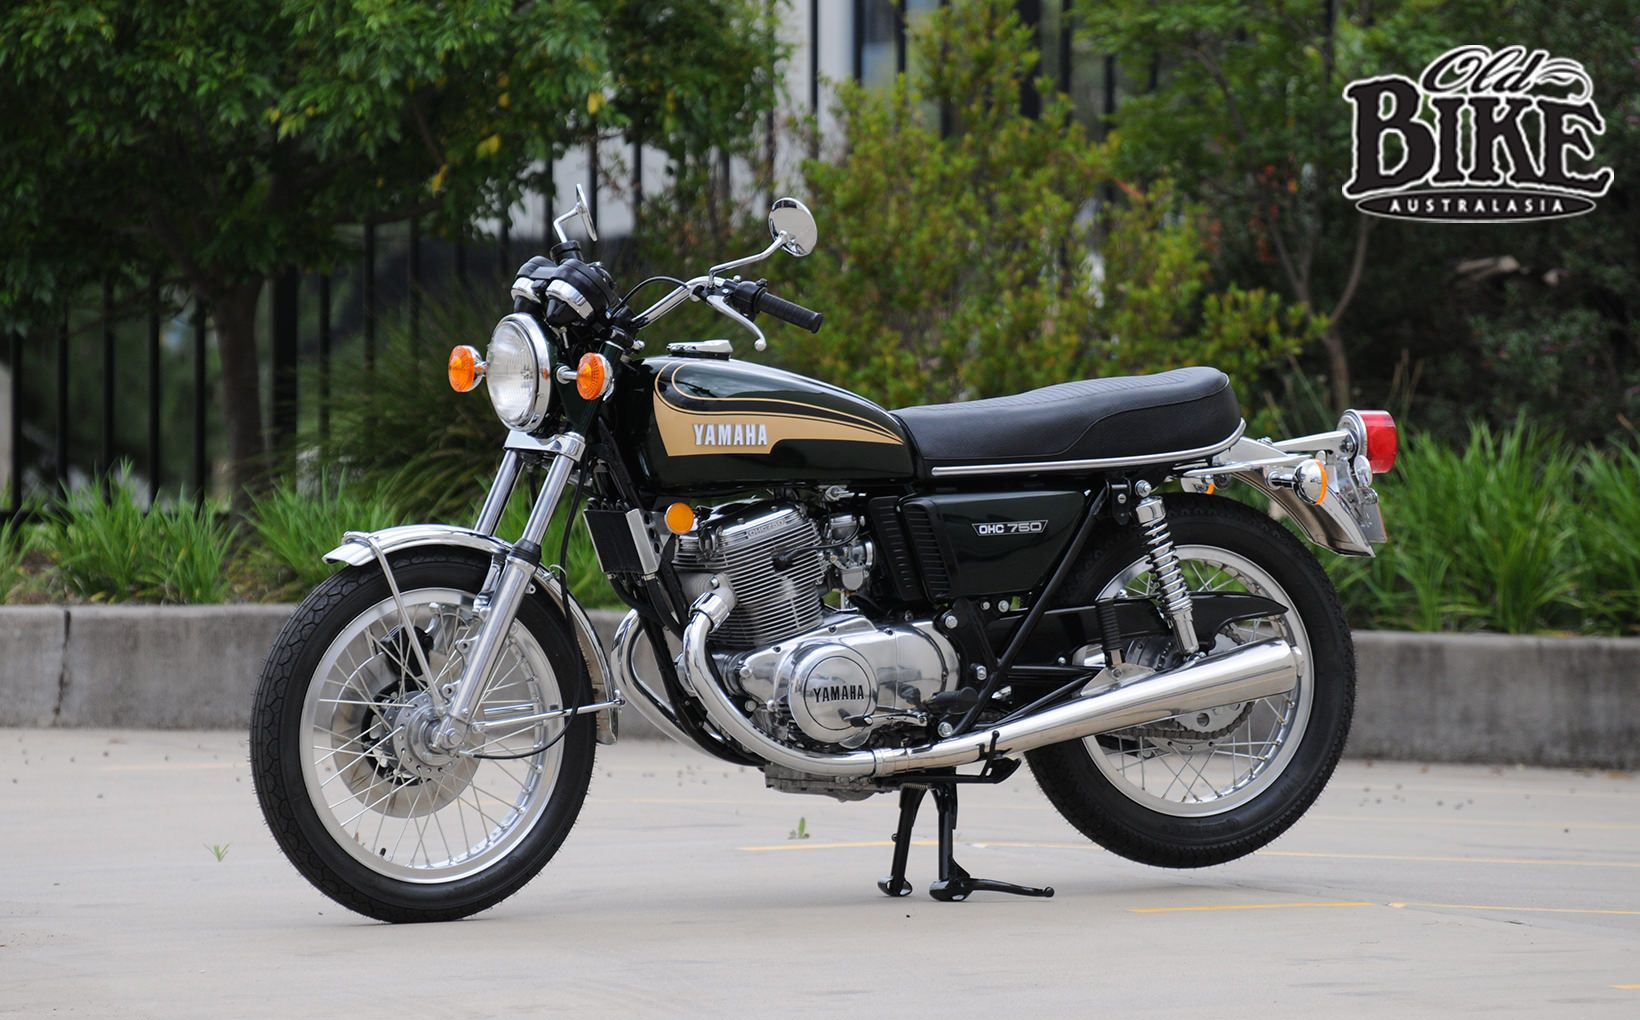 1973 yamaha tx 750 not quite right shannons club